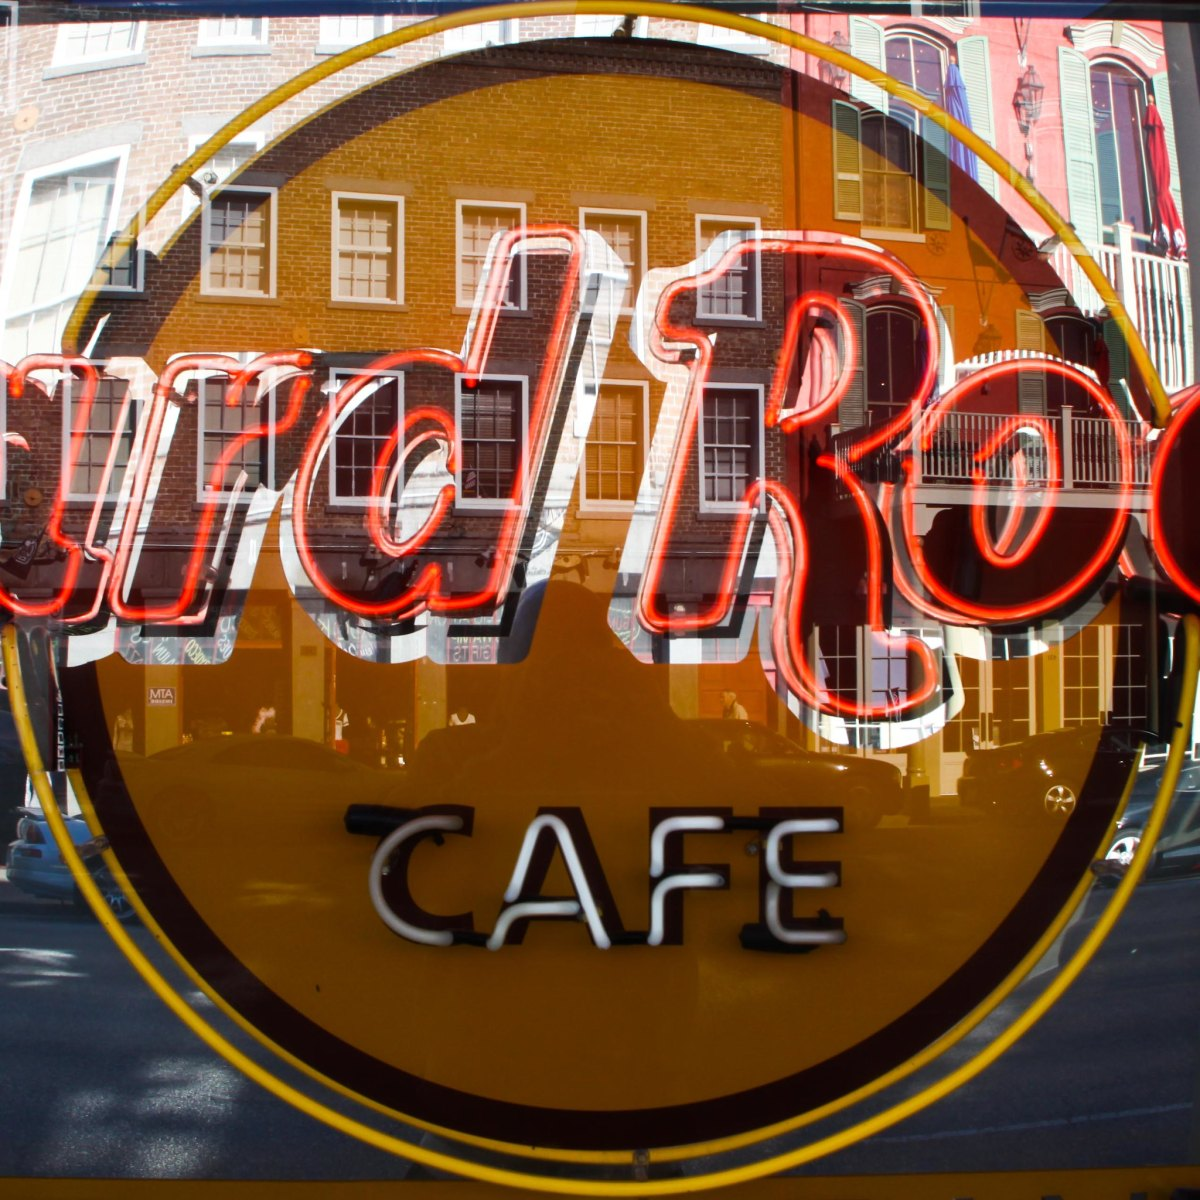 Hard Rock Cafe on Bourbon offers free Legendary Steak Burger to frontline health care workers